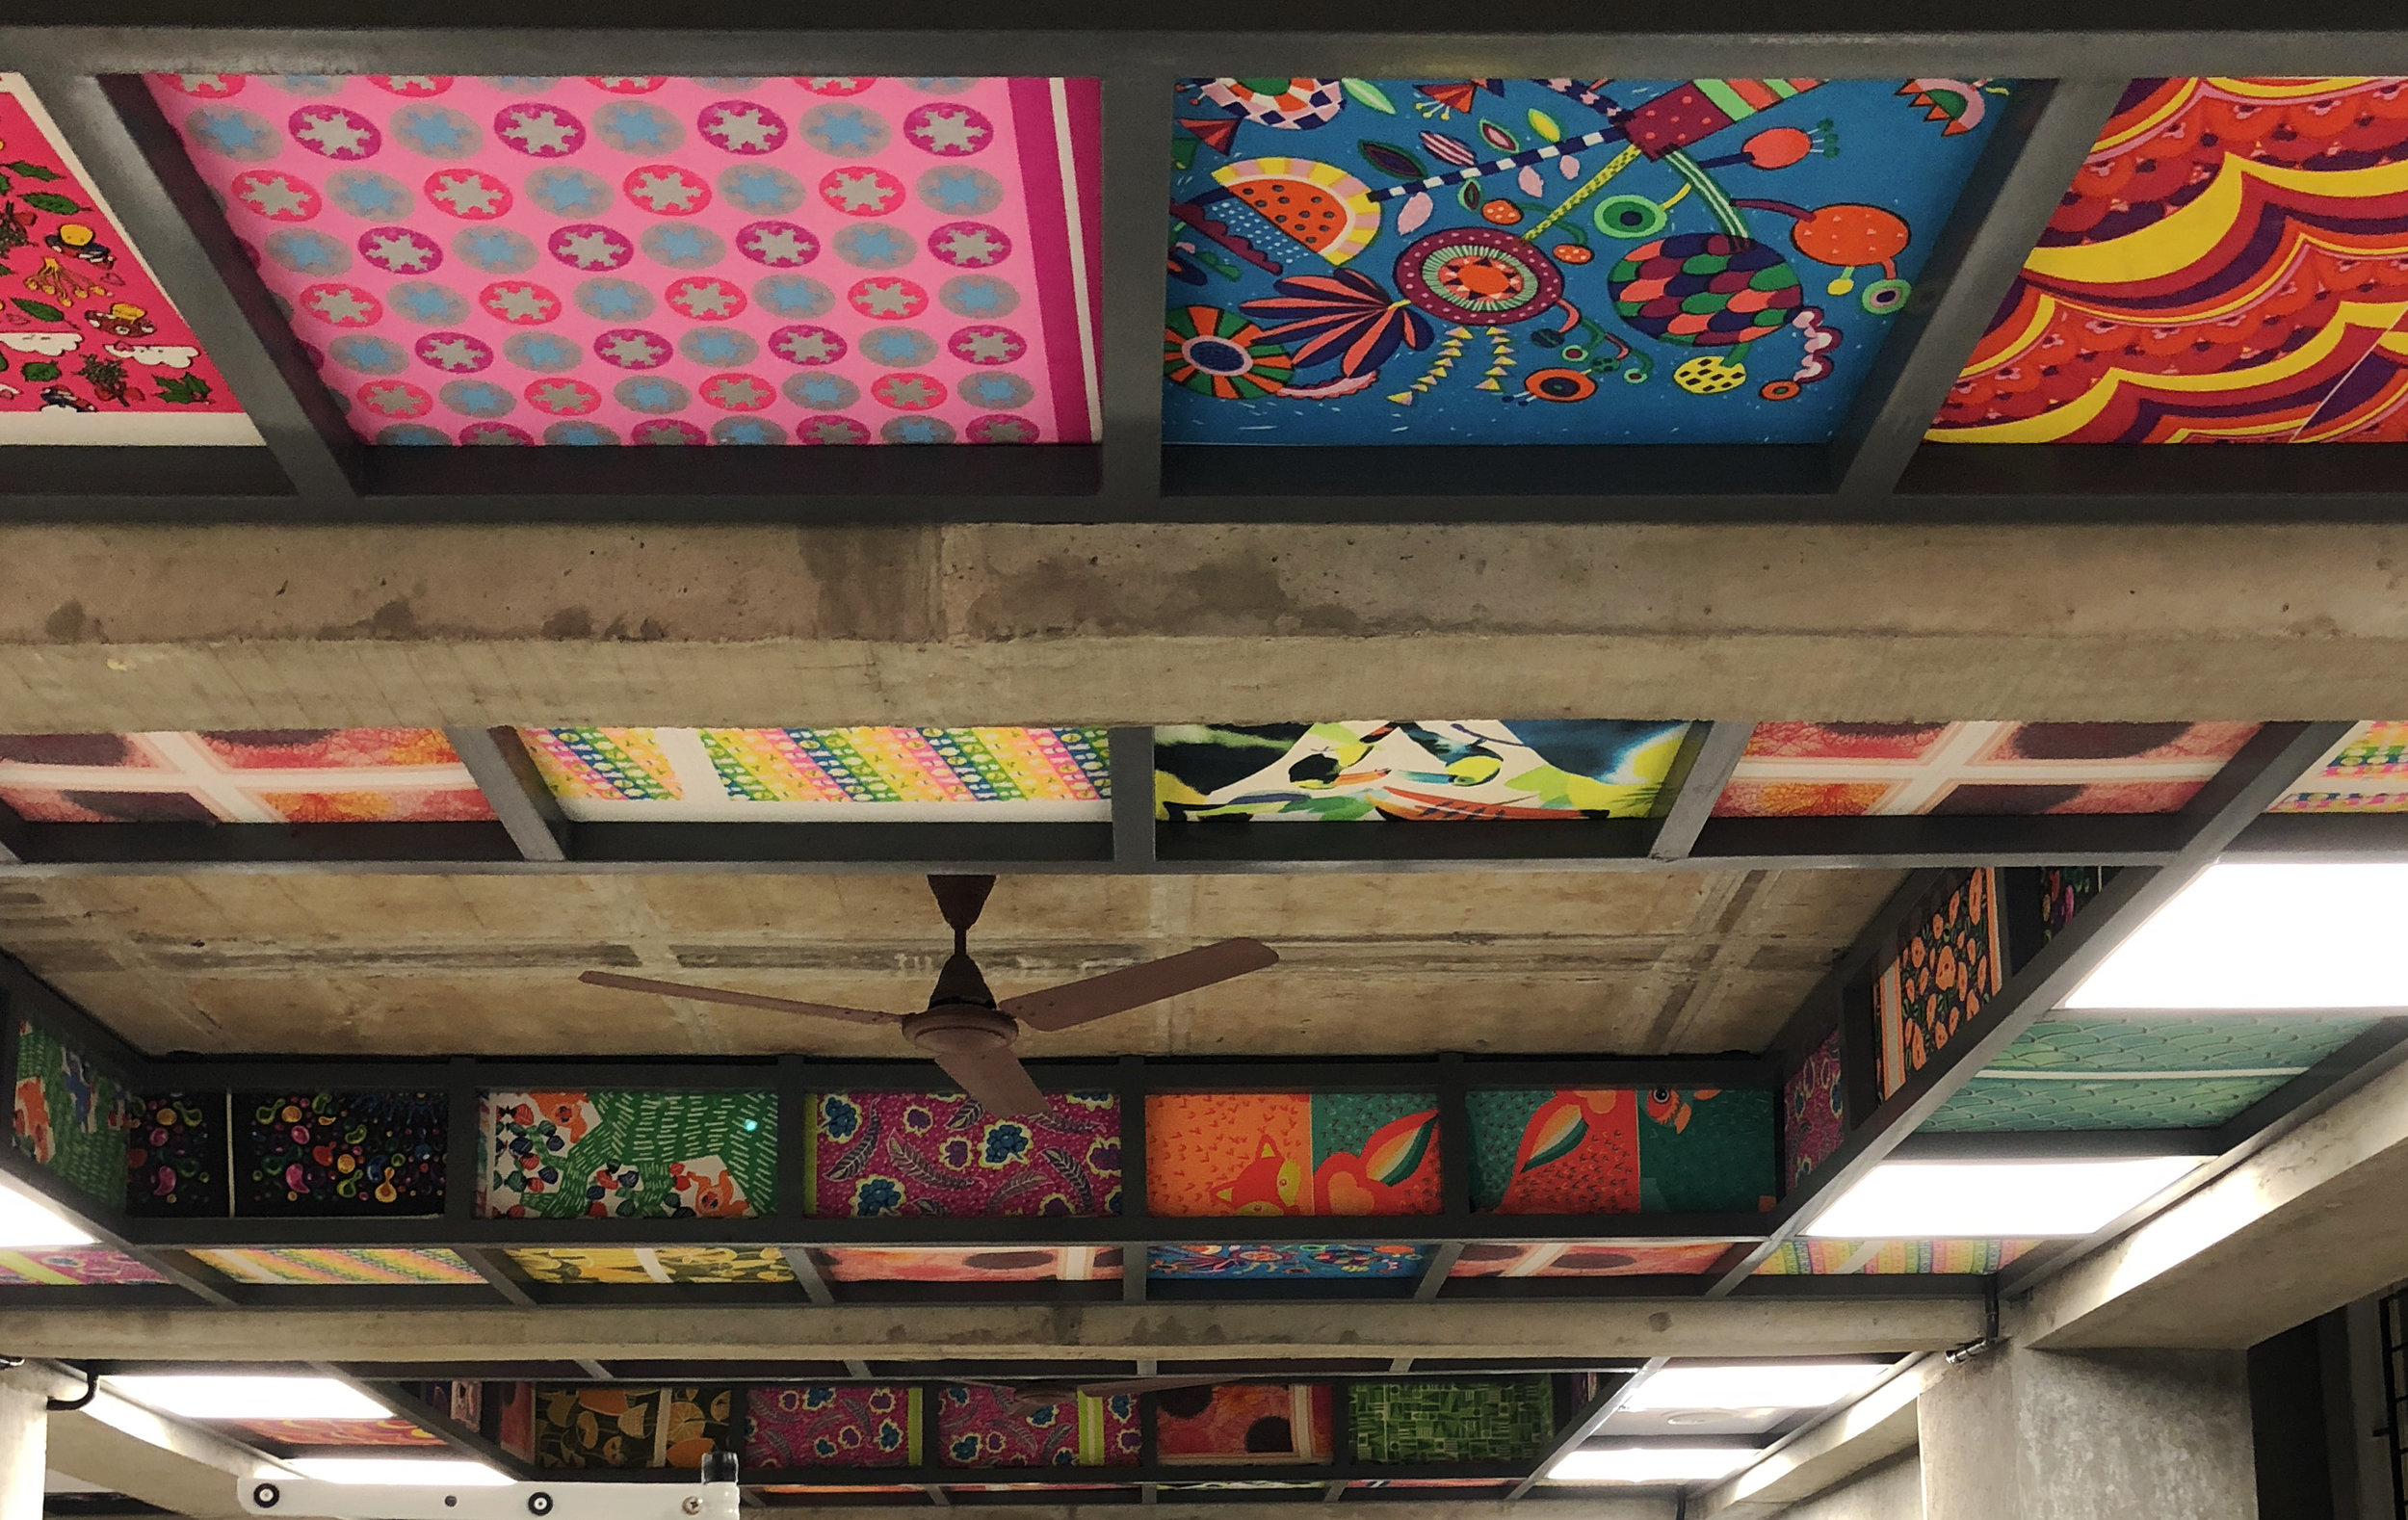 A patchwork of the colourful wraps we have created over the years adorn the ceiling.